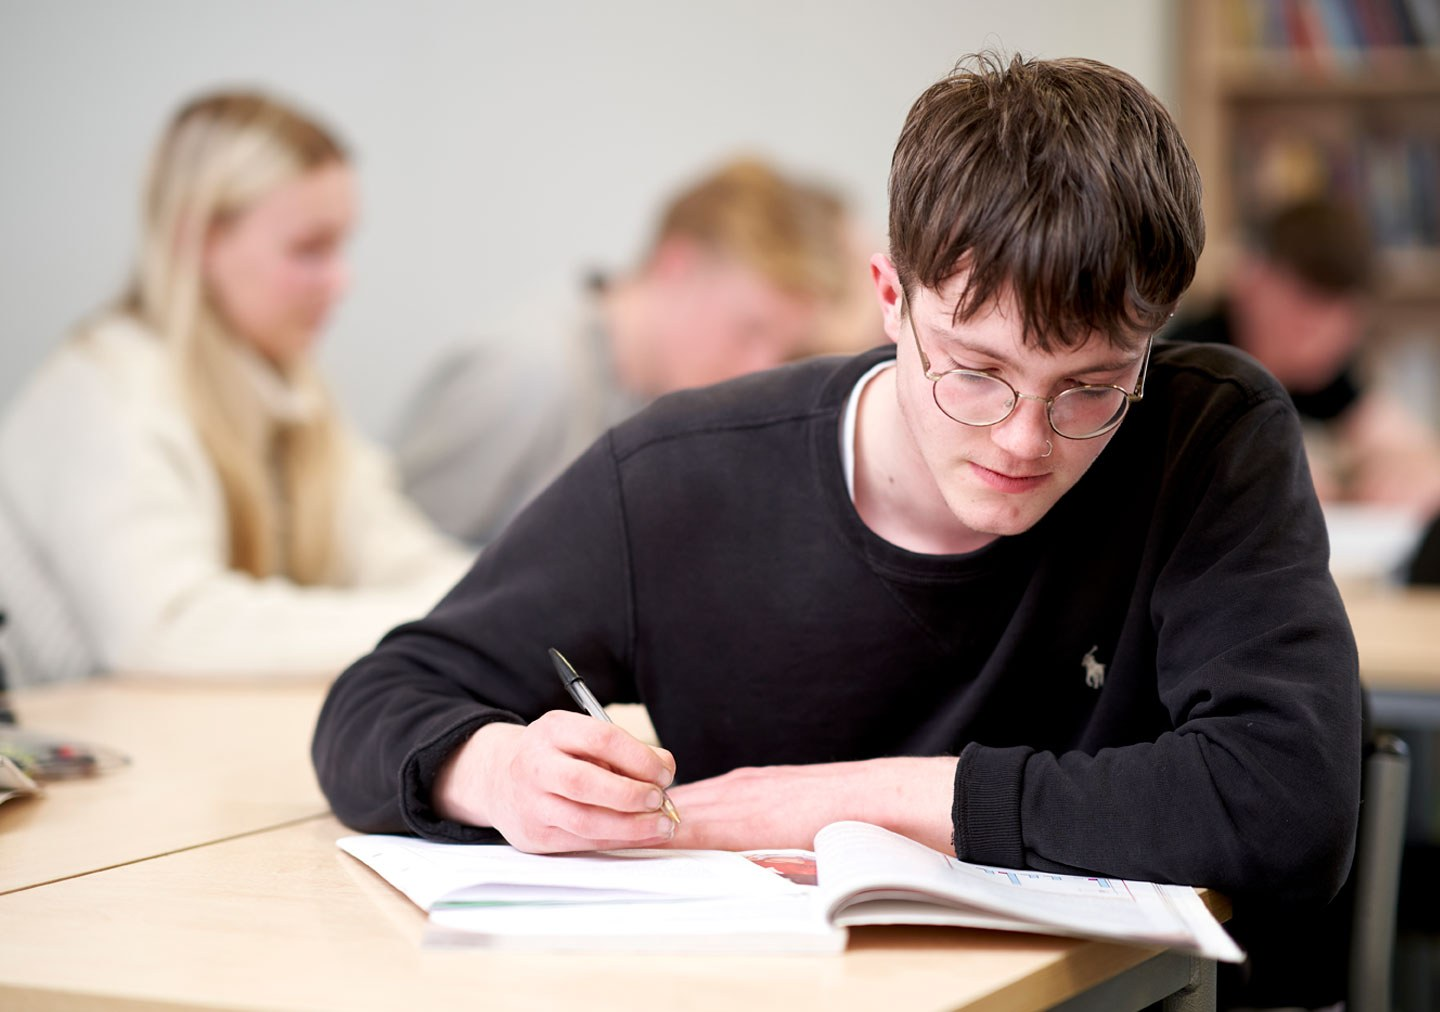 A Sociology student is taking notes from a textbook